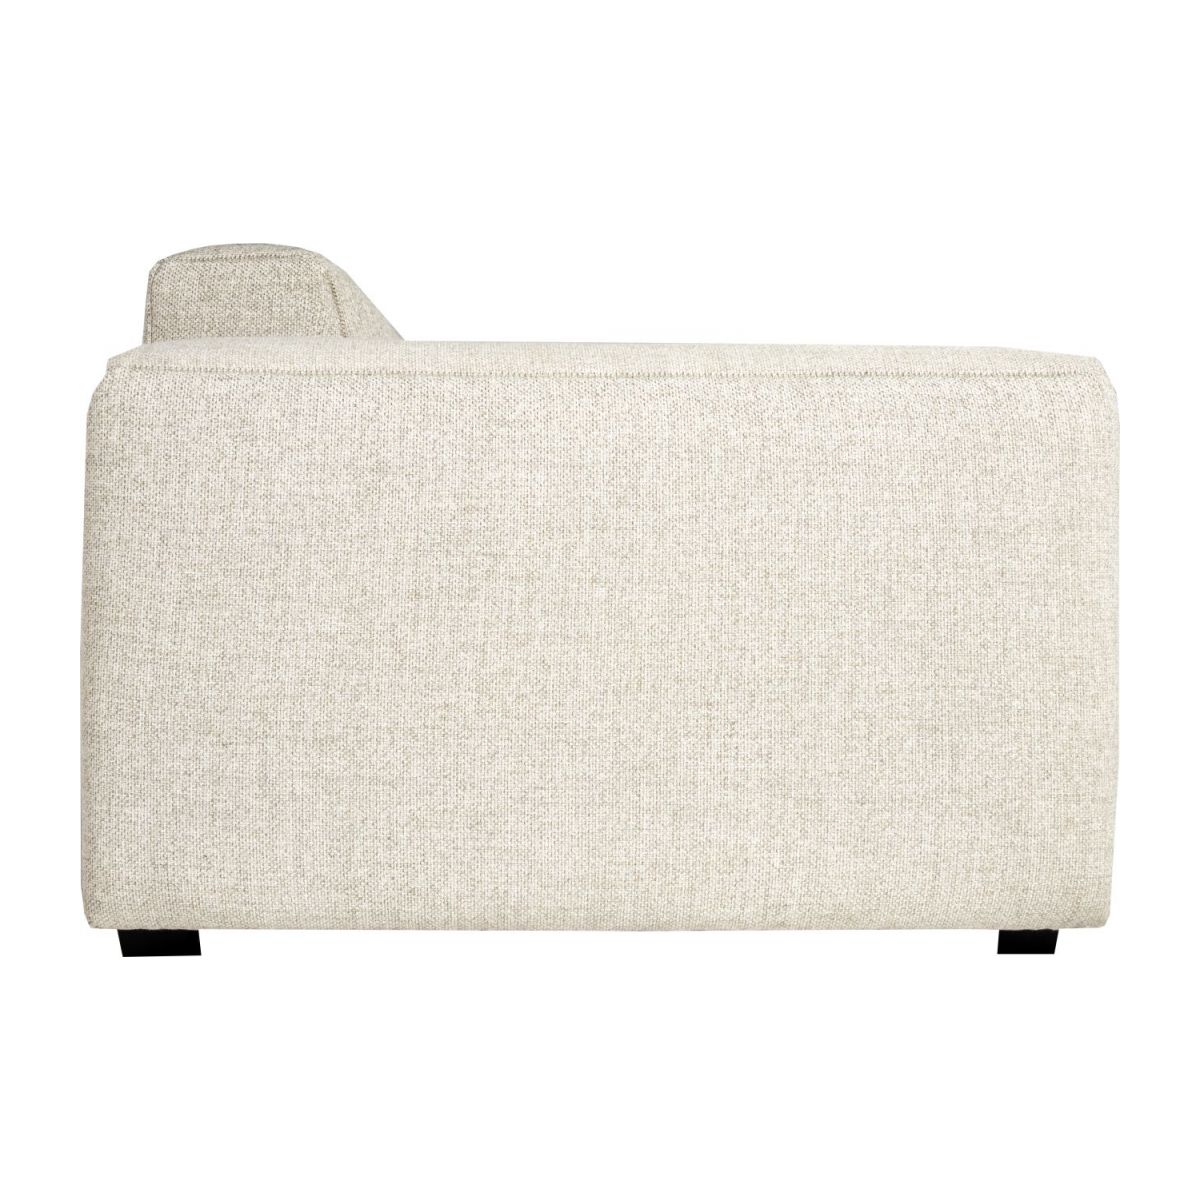 2 seater sofa in Lecce fabric, nature n°4